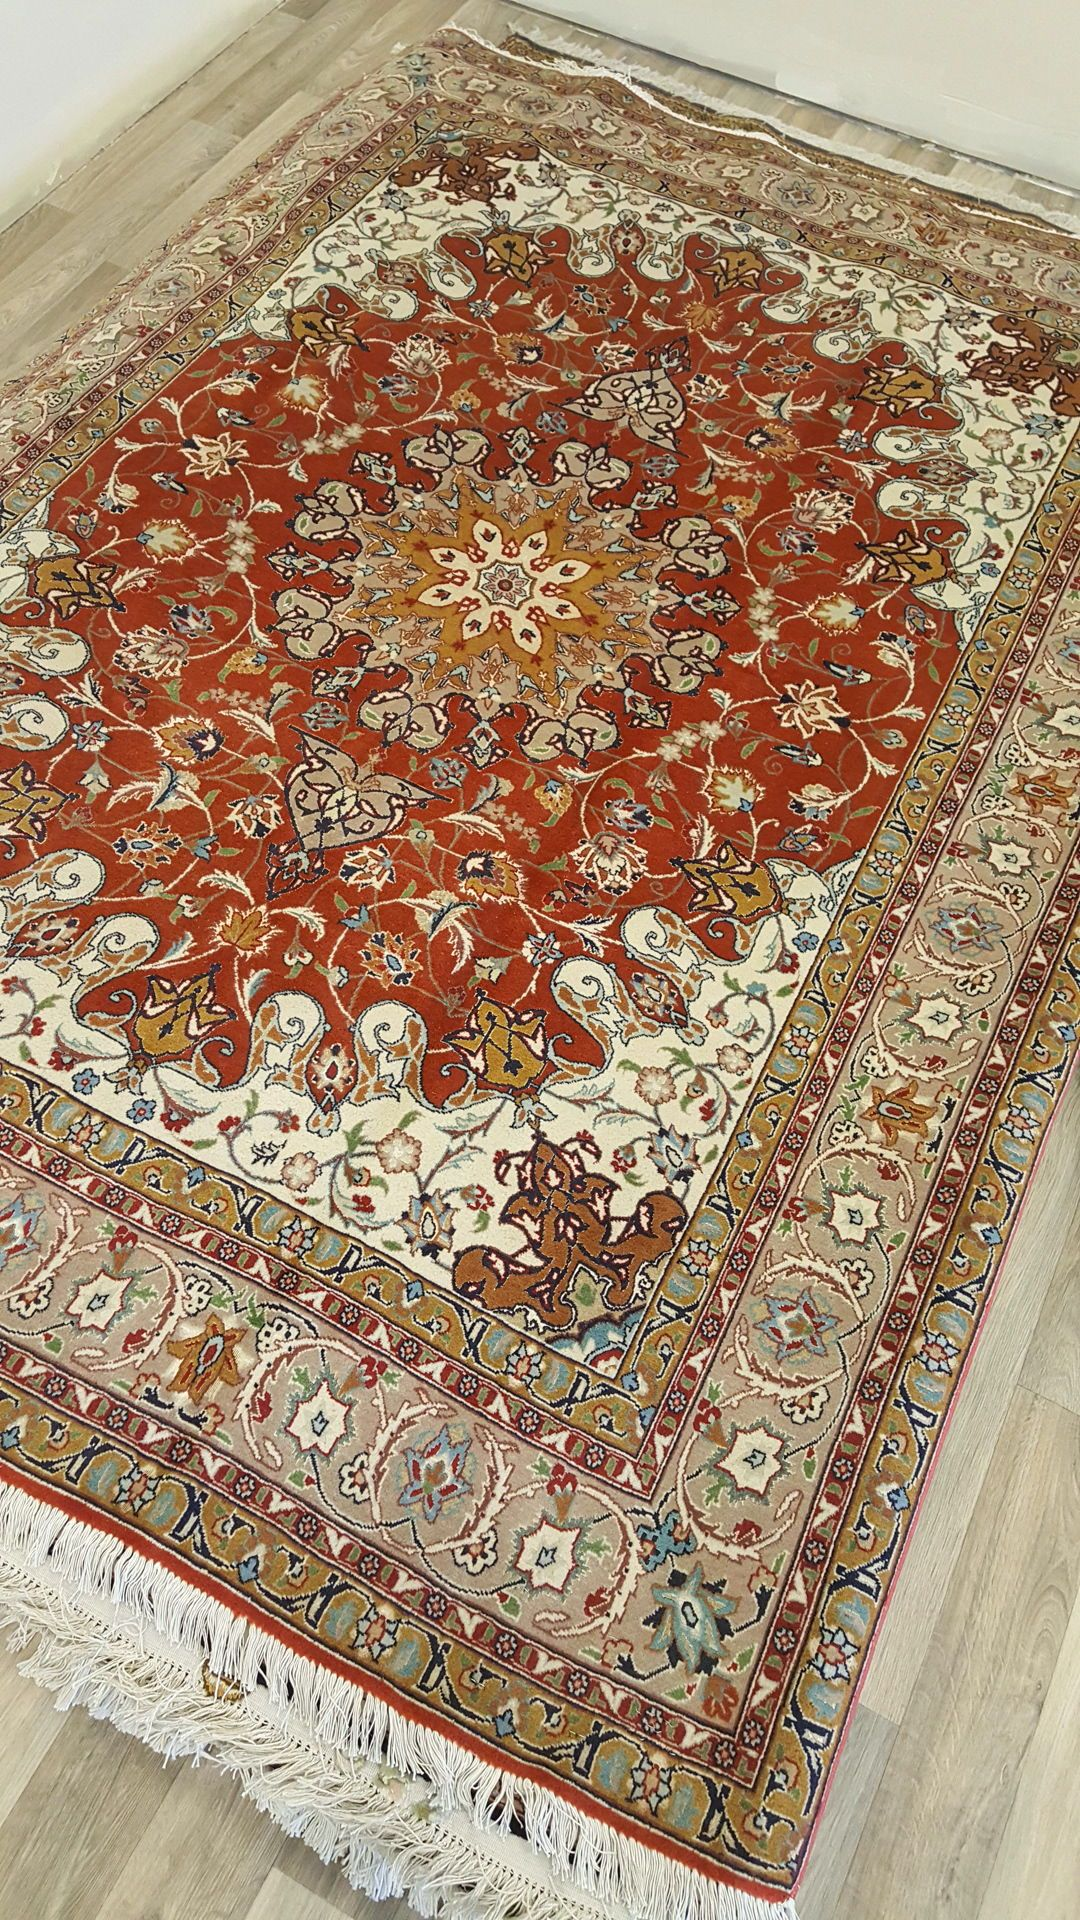 Classic Large Oriental Handmade Area Rug Authentic Affordable Persian Area Rug Magic Rugs Antique Rugs Shop In Matthe Rugs Persian Area Rugs Rugs On Carpet